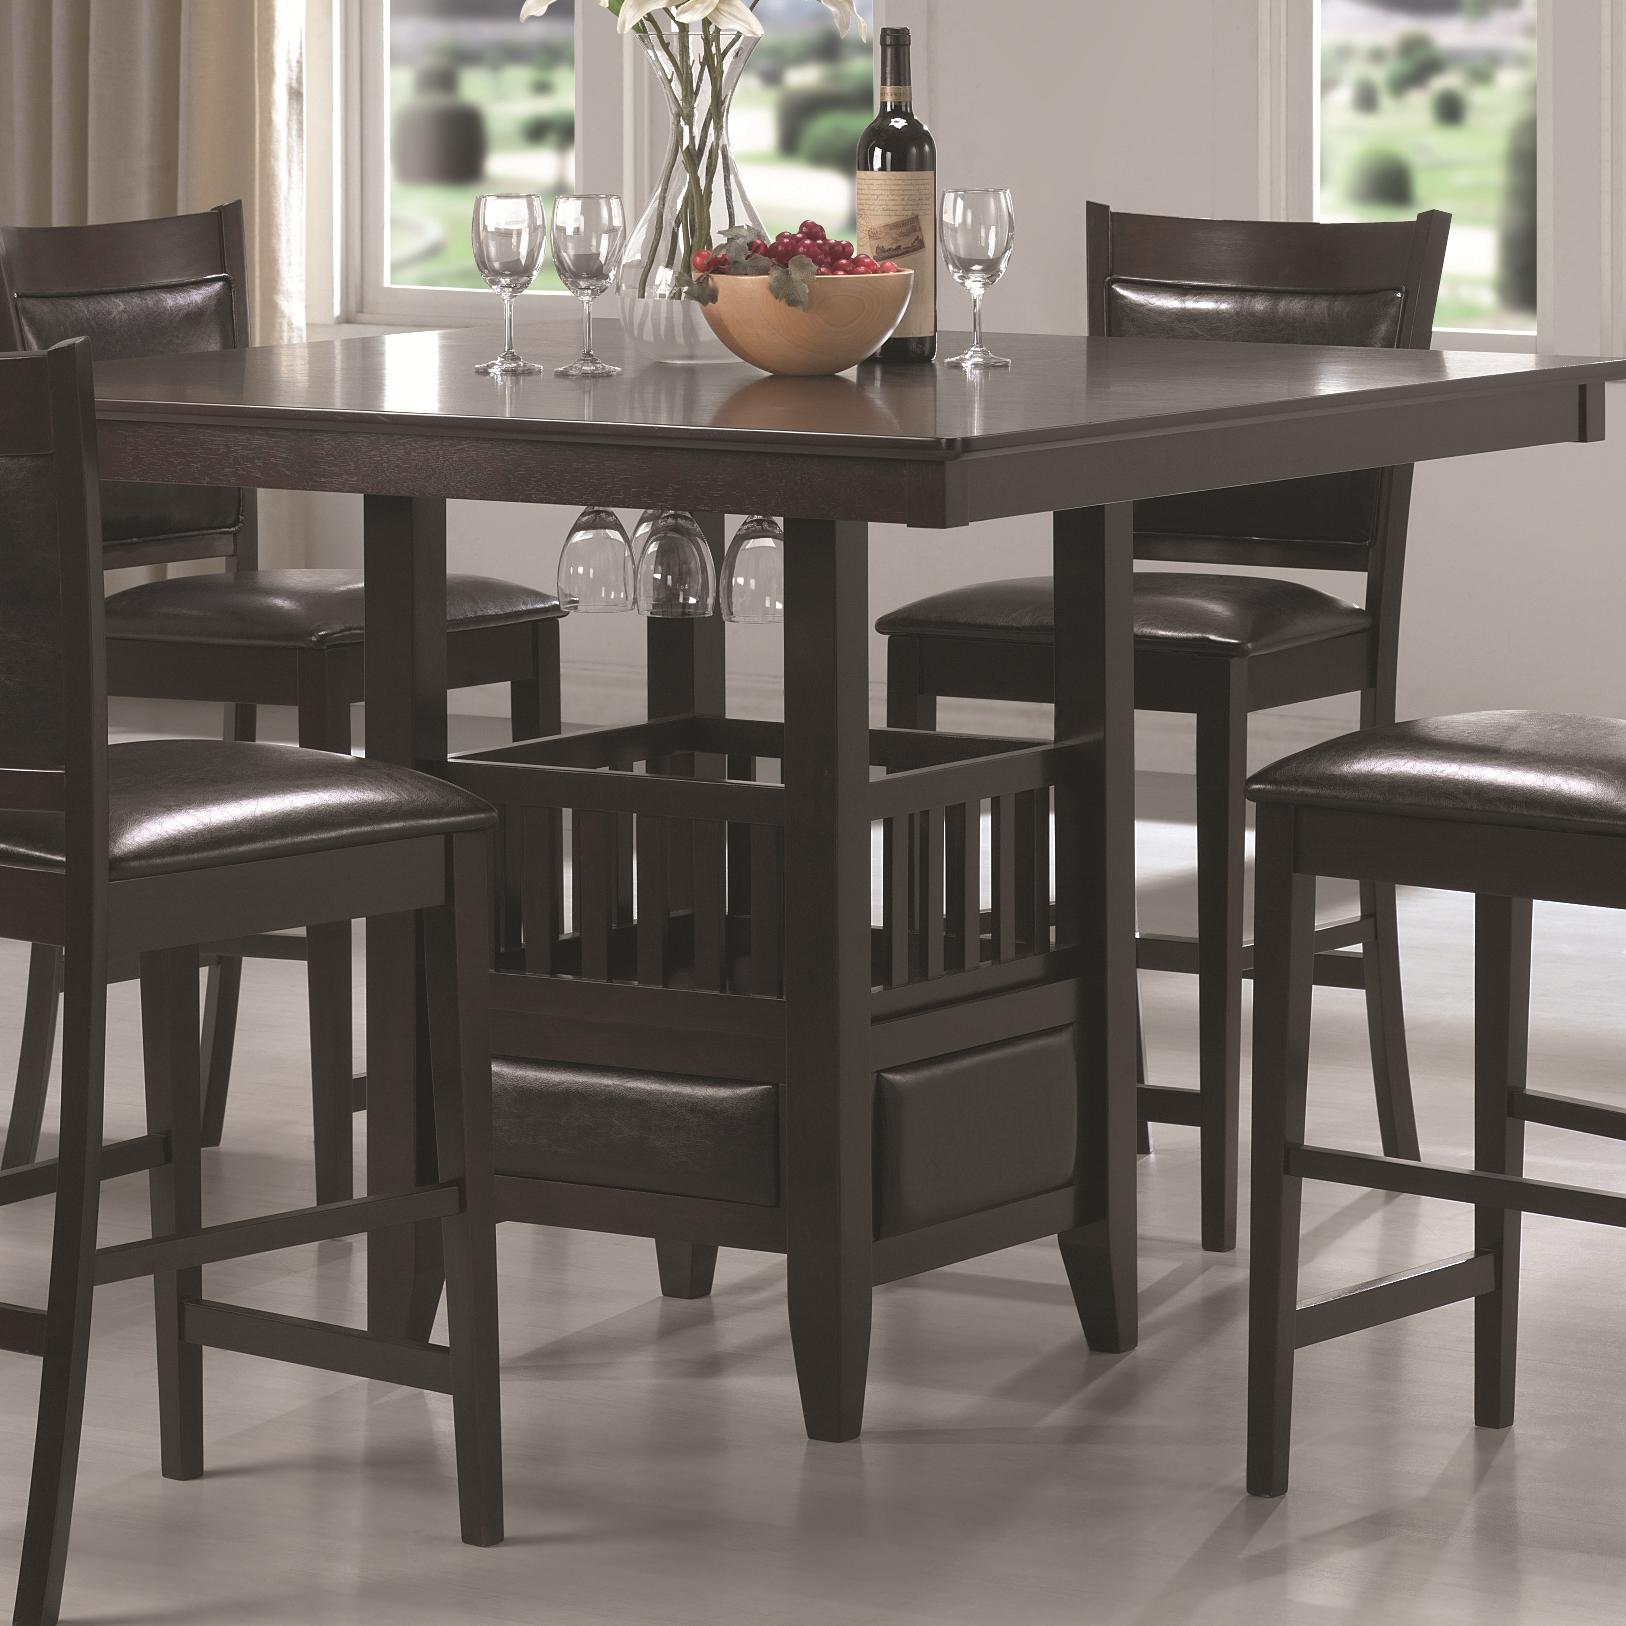 Coaster Jaden Counter Height Table - Item Number: 100958